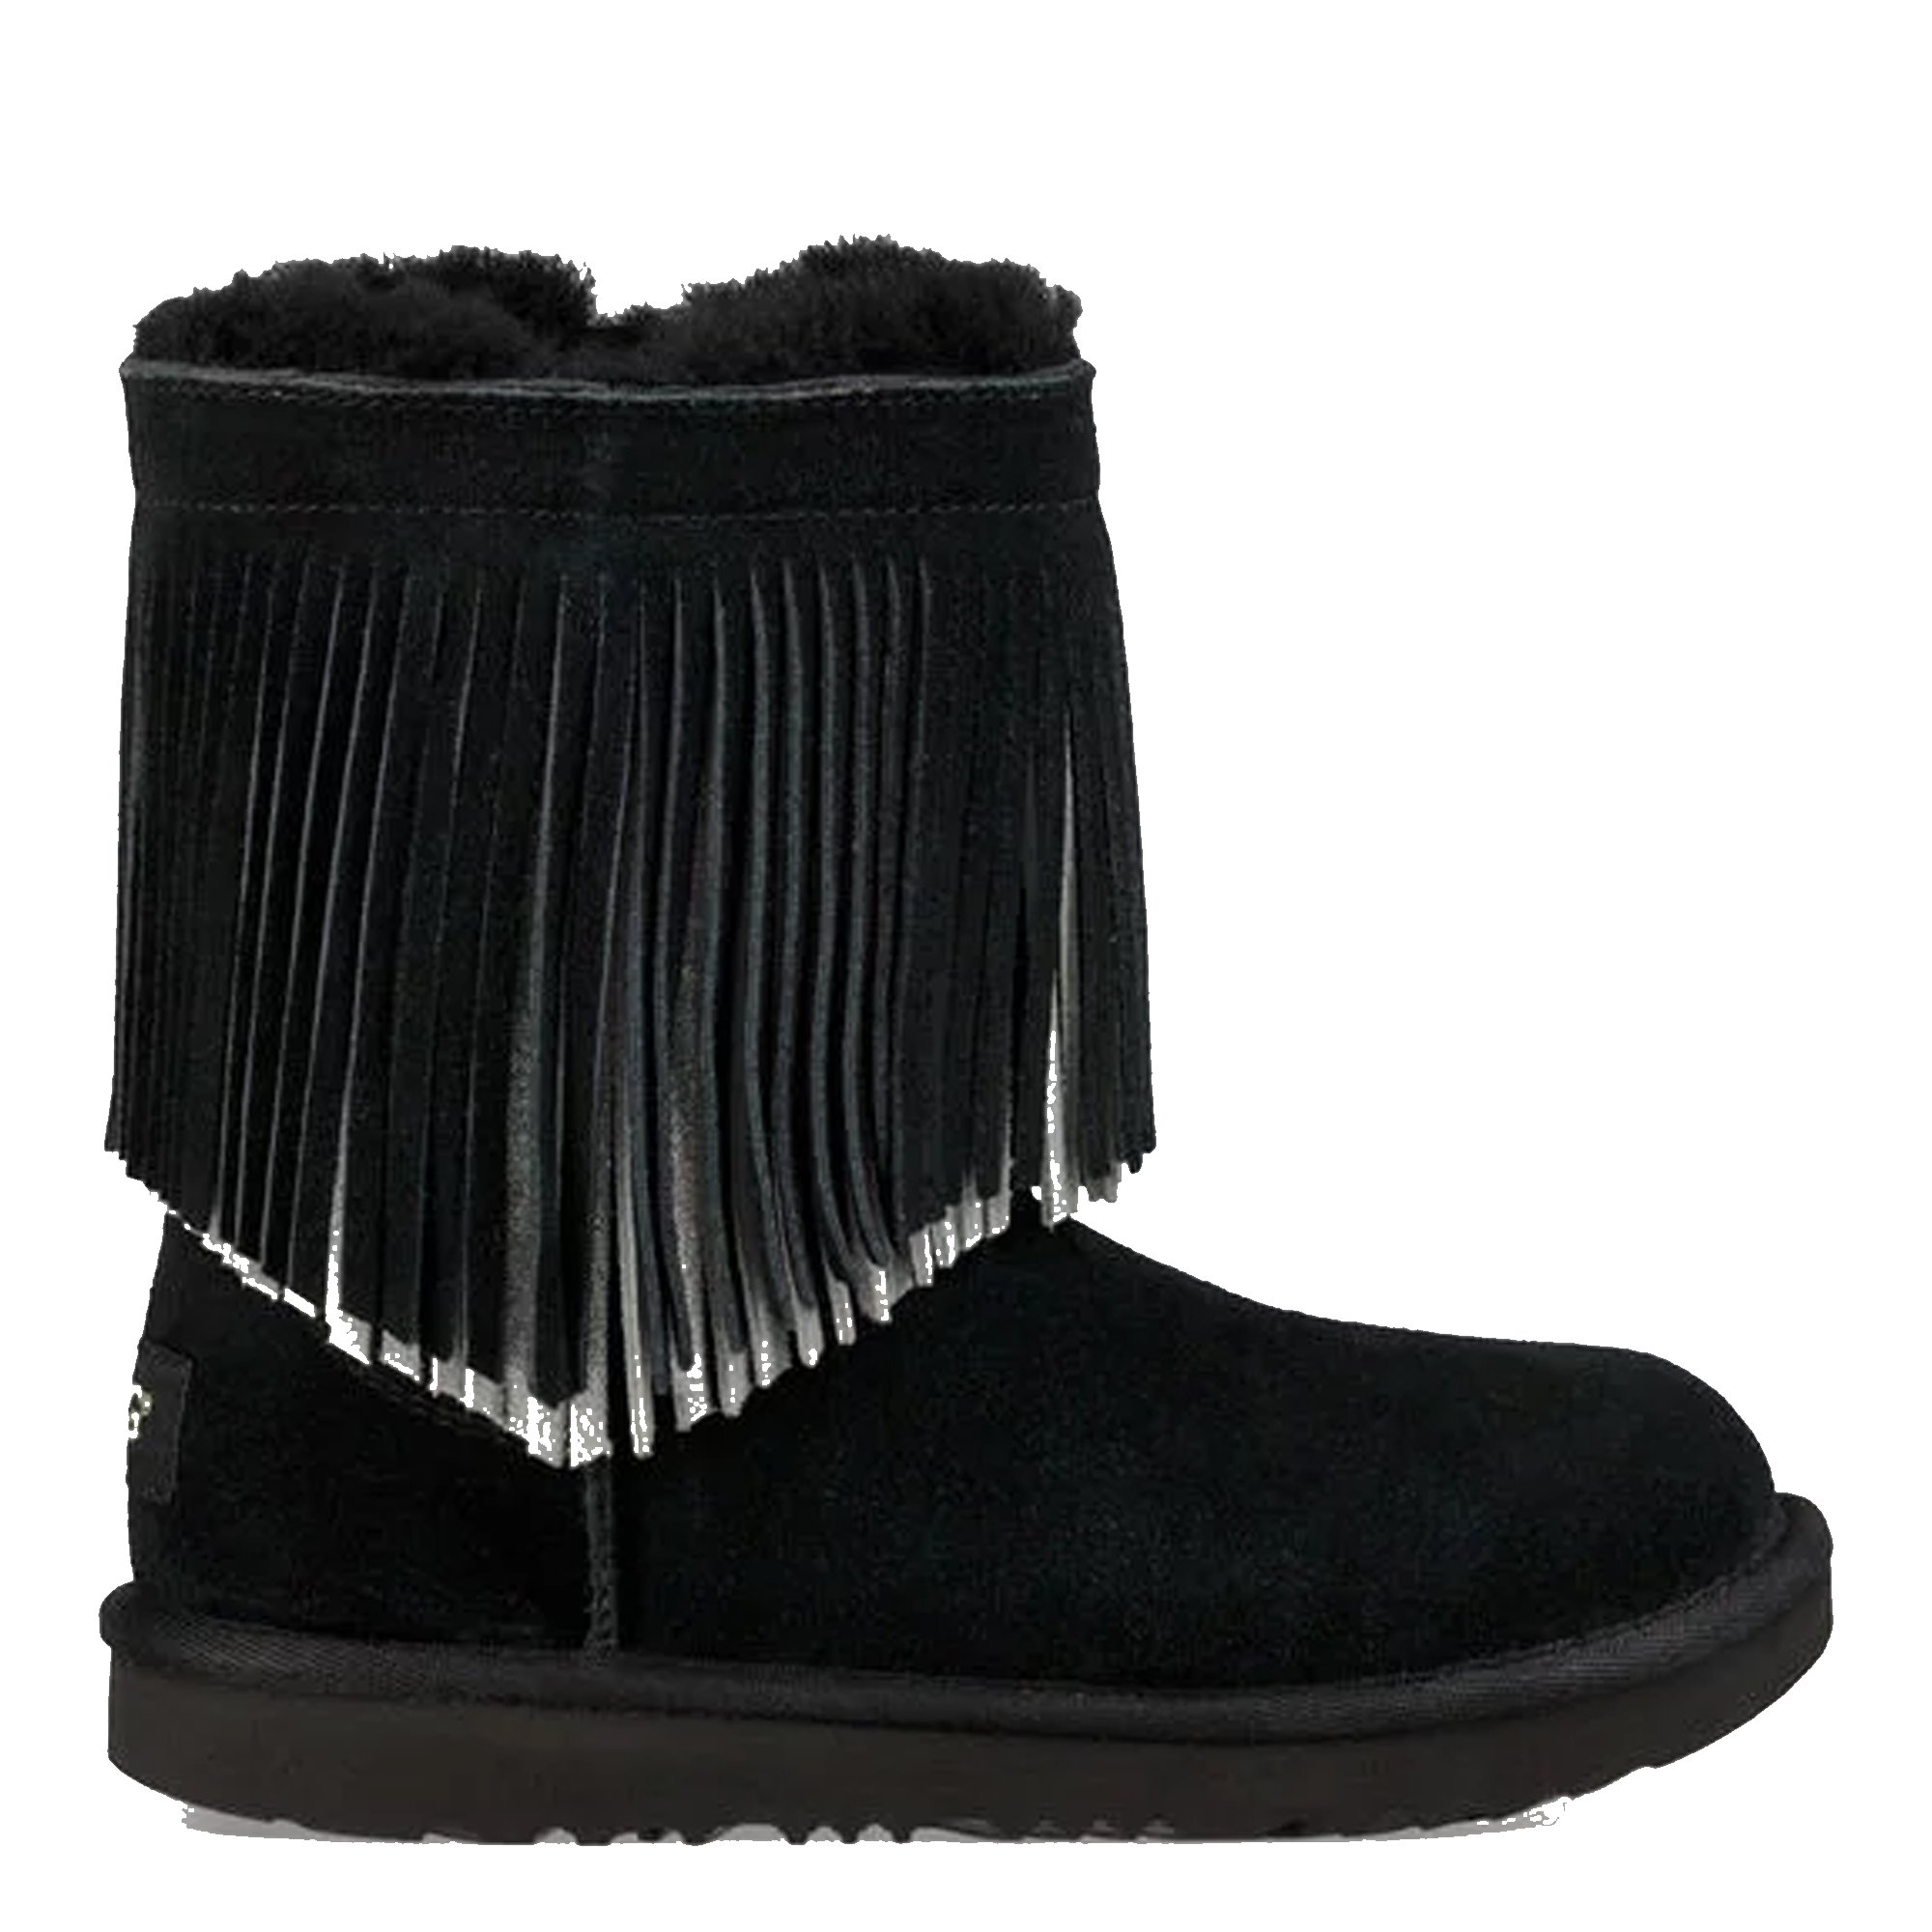 UGG Big Kids Classic Short II Fringe Boot Black Size 13 M US Little Kid